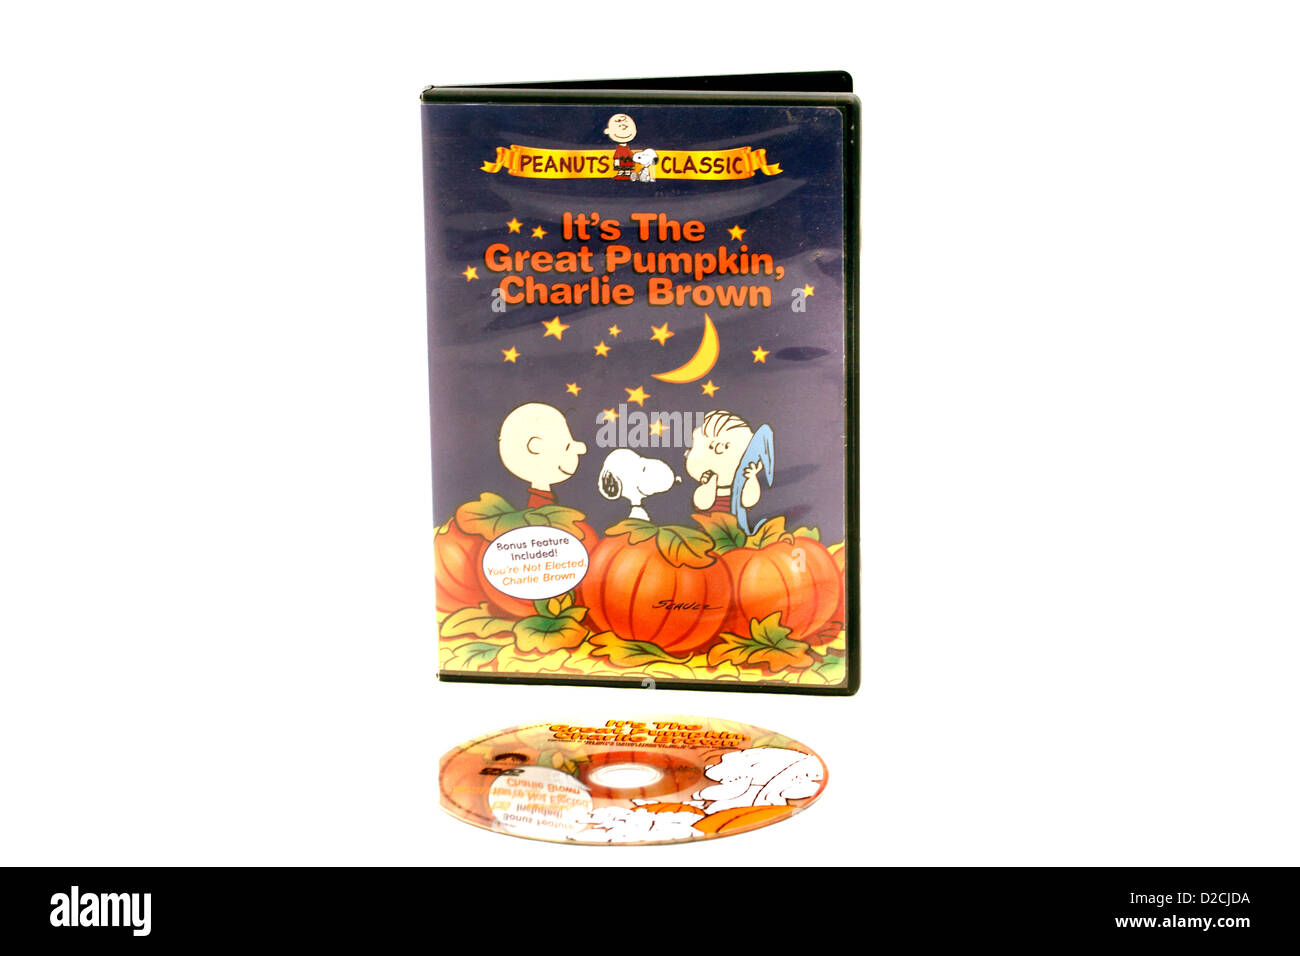 Peanuts Charlie Brown Stock Photos & Peanuts Charlie Brown Stock ...